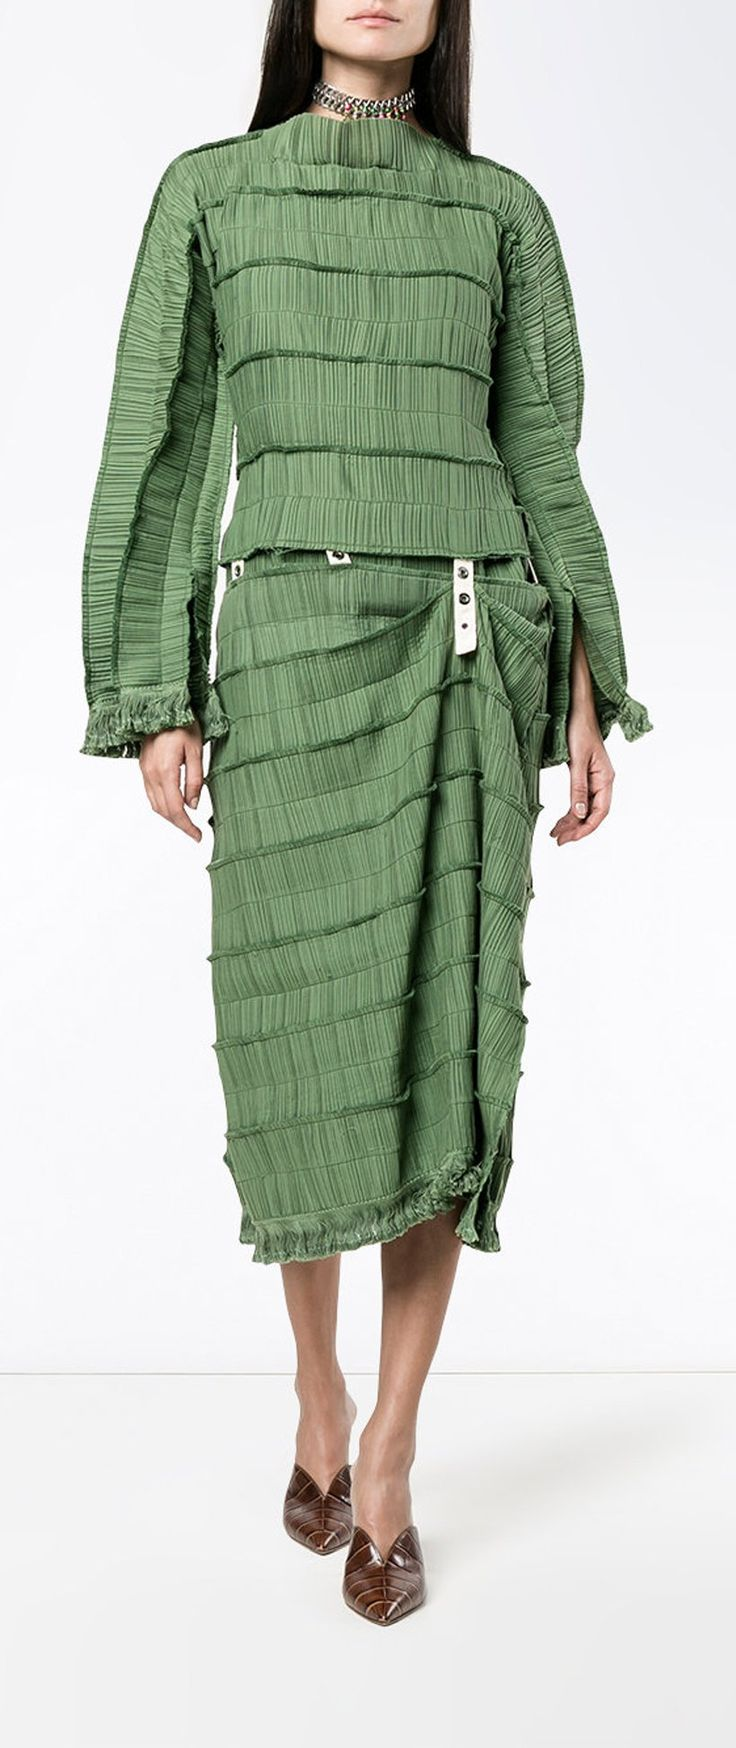 LOEWE  pleated midi dress, explore new season dresses on Farfetch.